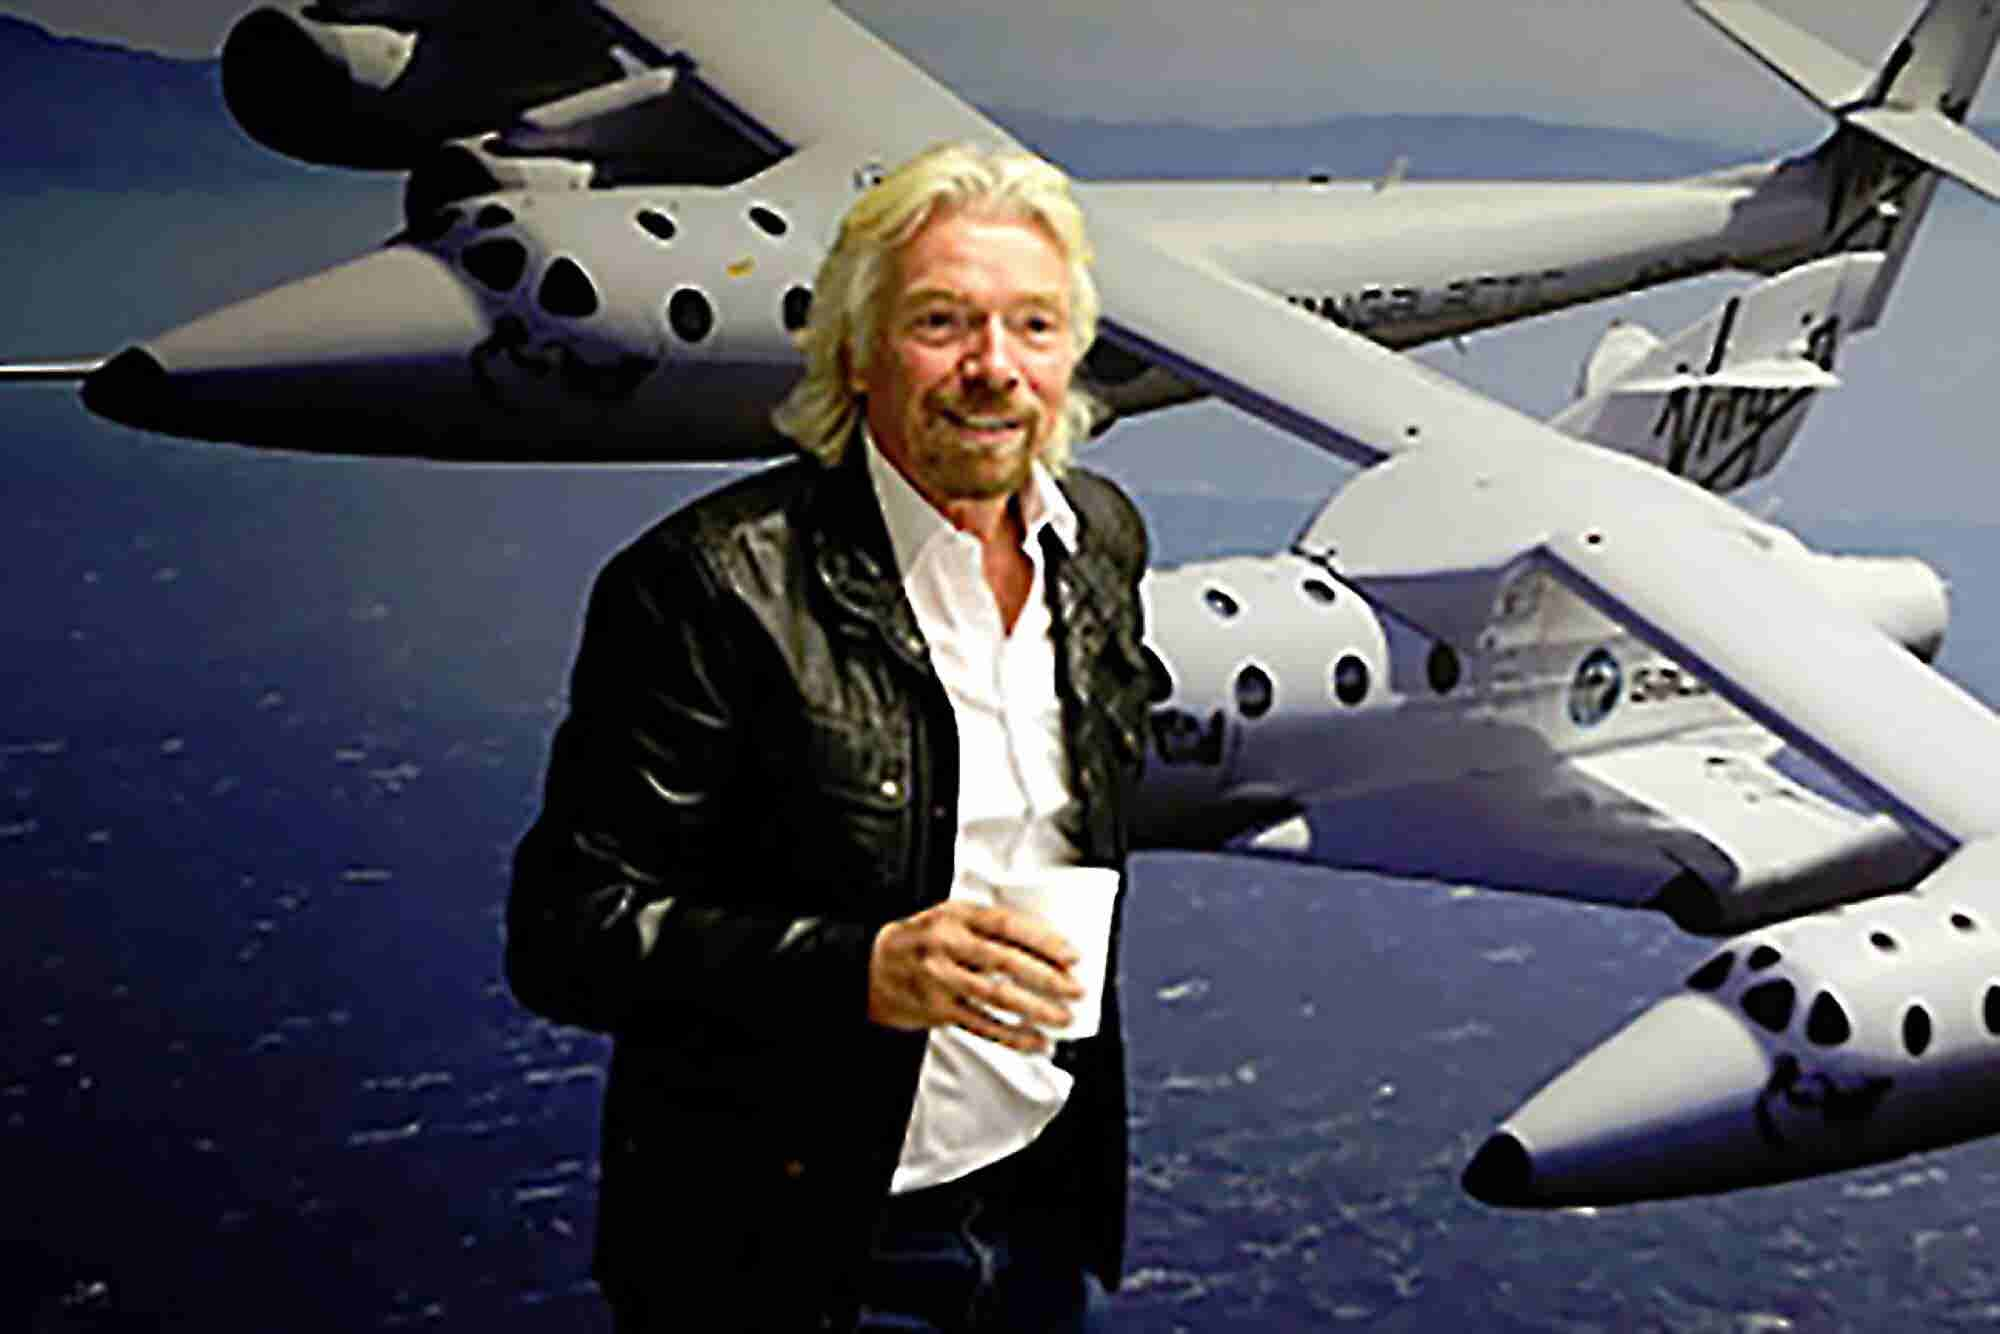 These Famous People Have Tickets for Richard Branson's Space Flights